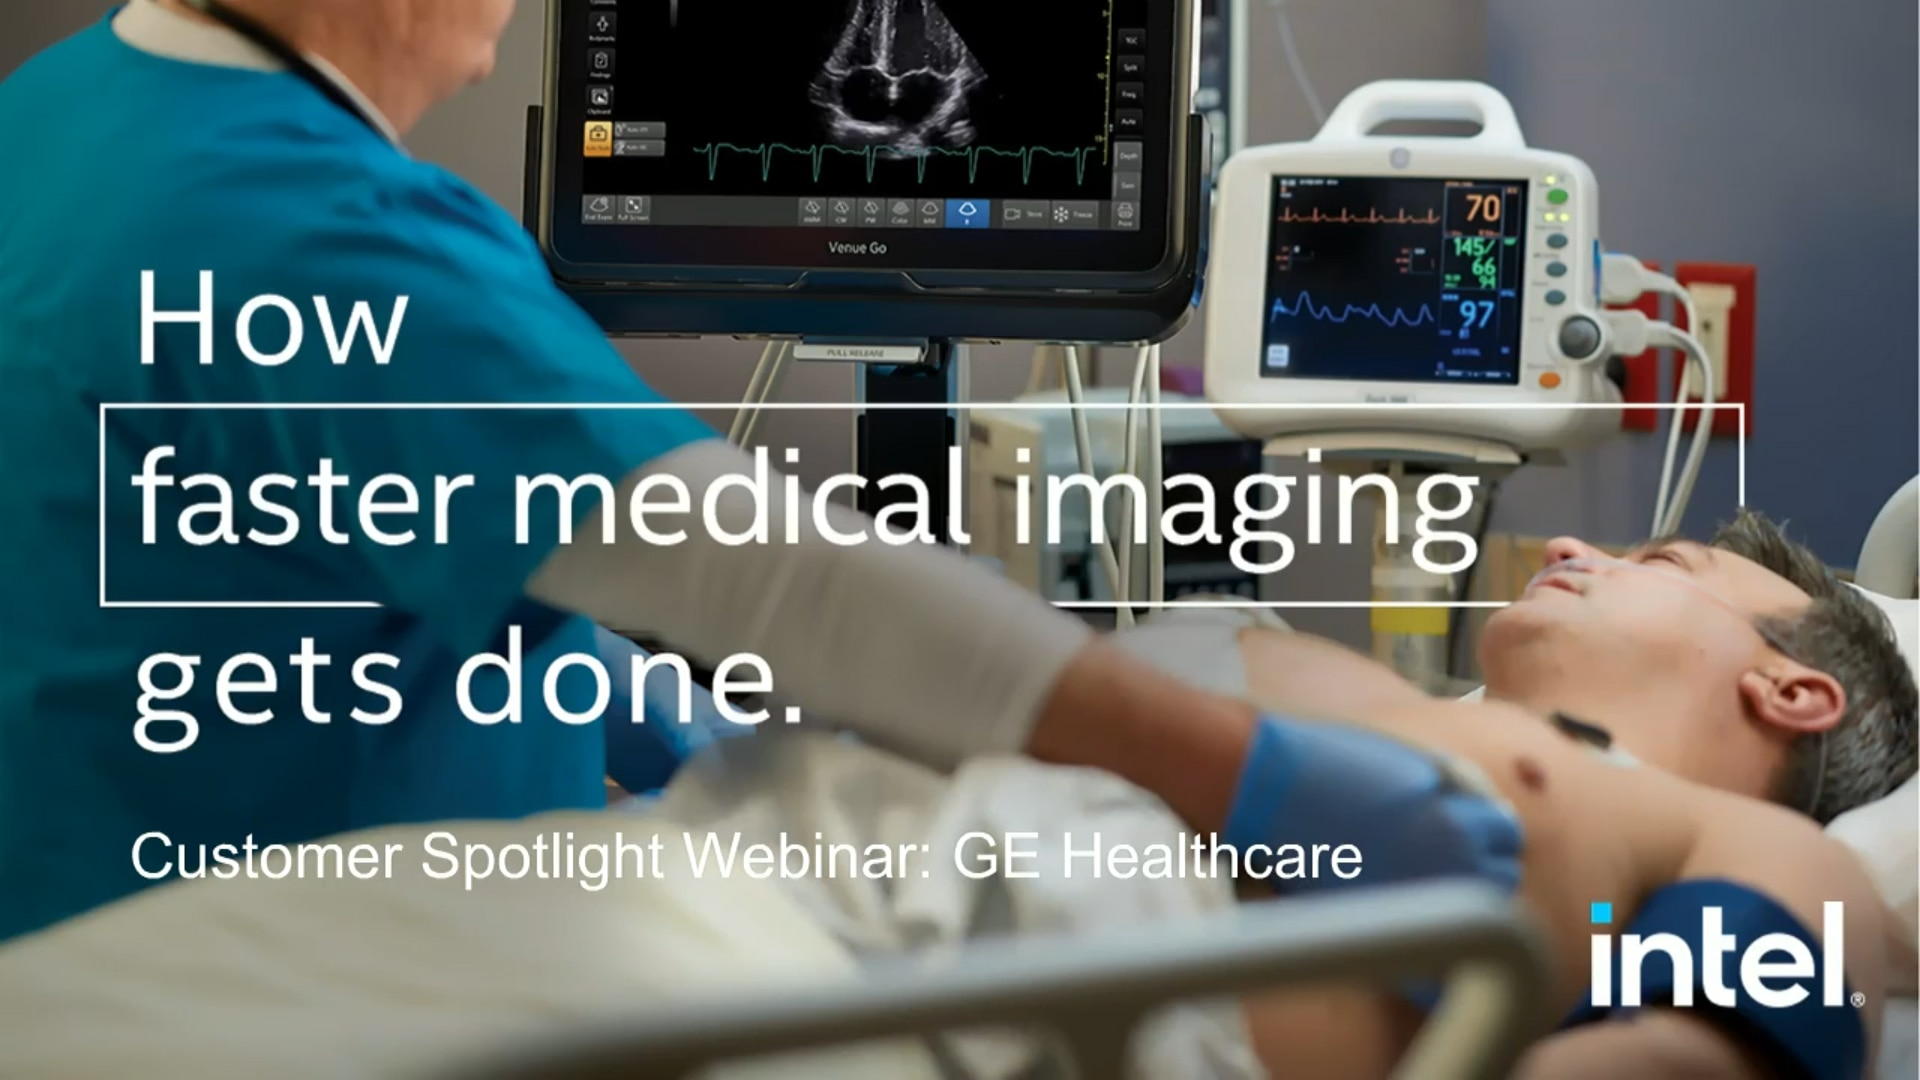 GE Healthcare: AI Helps Improve Patient Experience